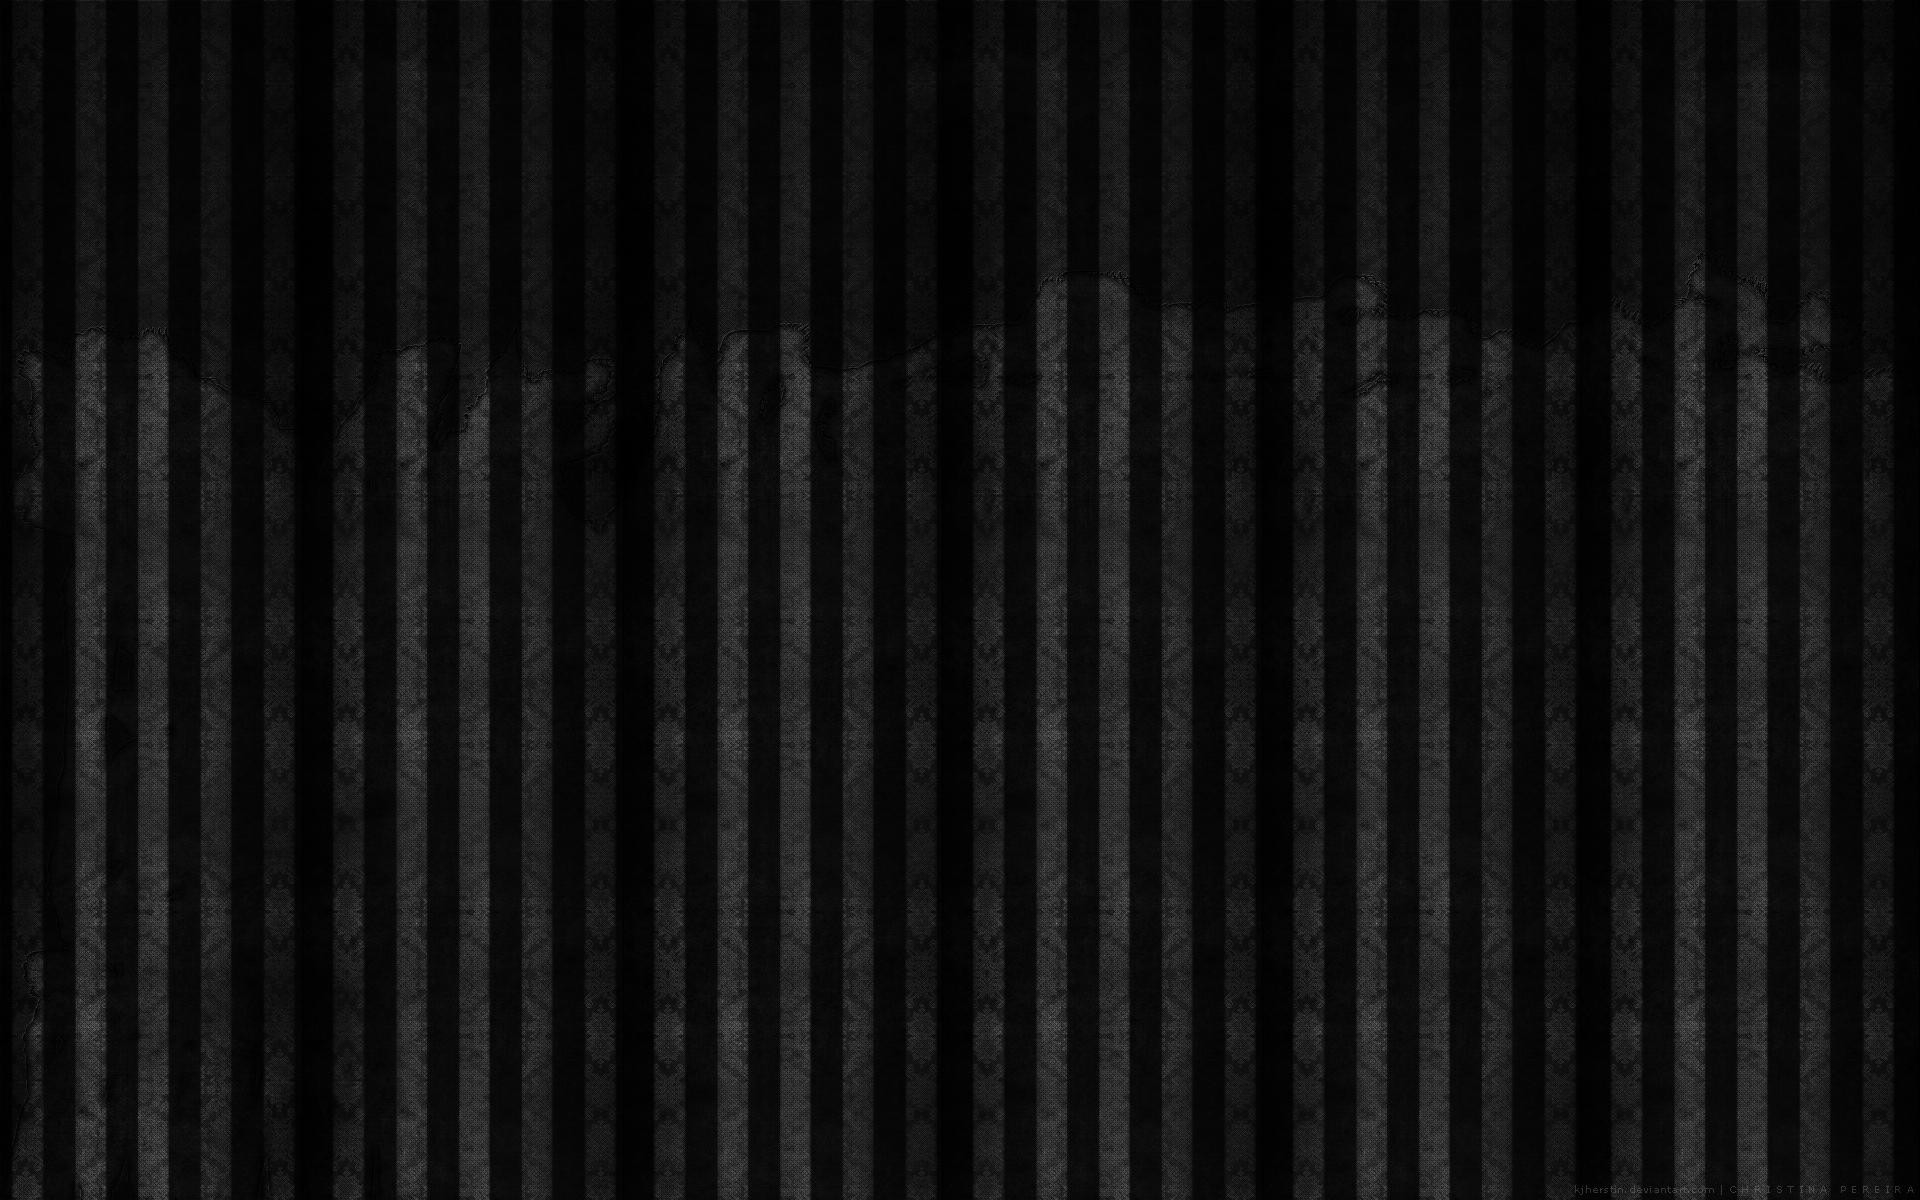 Black And White Gothic Wallpaper Victorian Background 183 ① Download Free Beautiful High